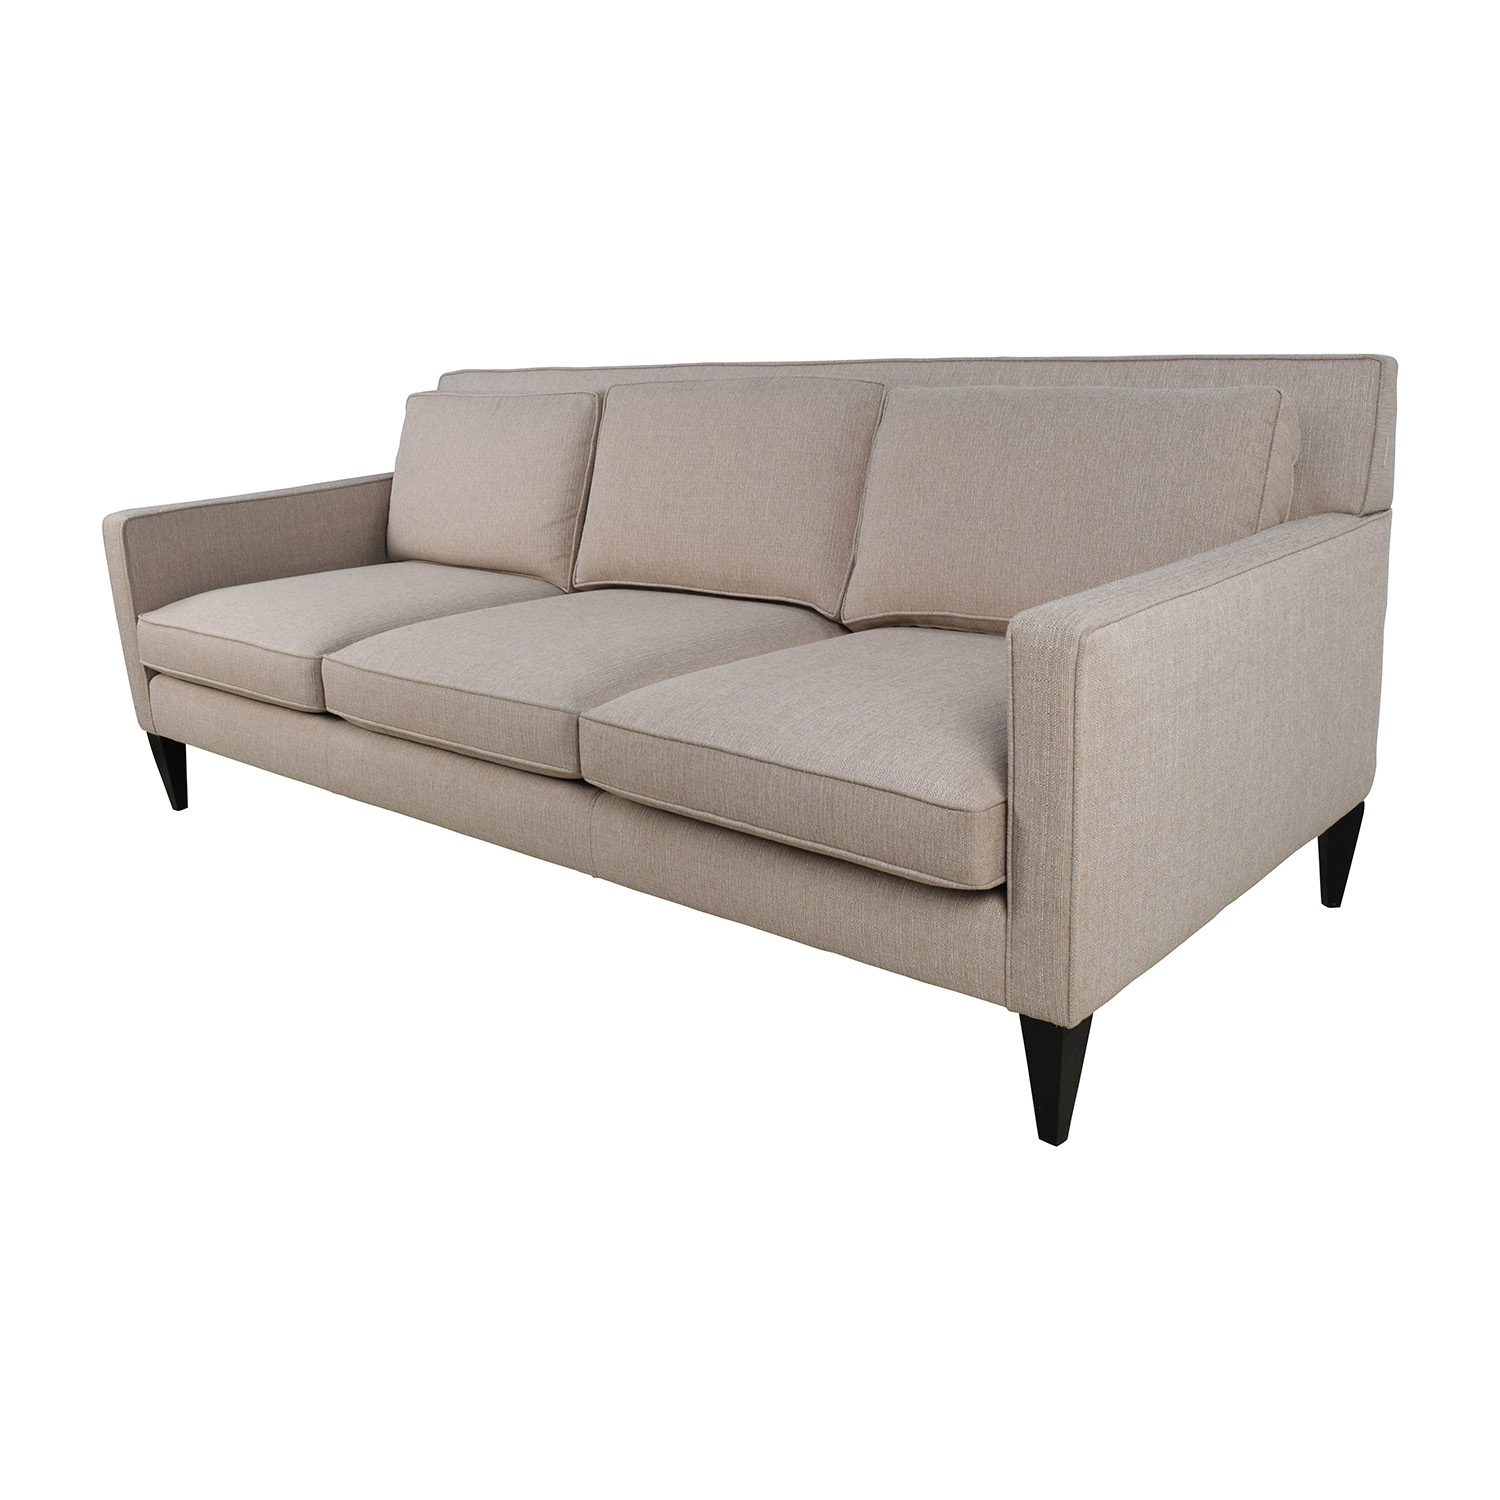 crate and barrel sofas canada small for apartments uk futon roselawnlutheran